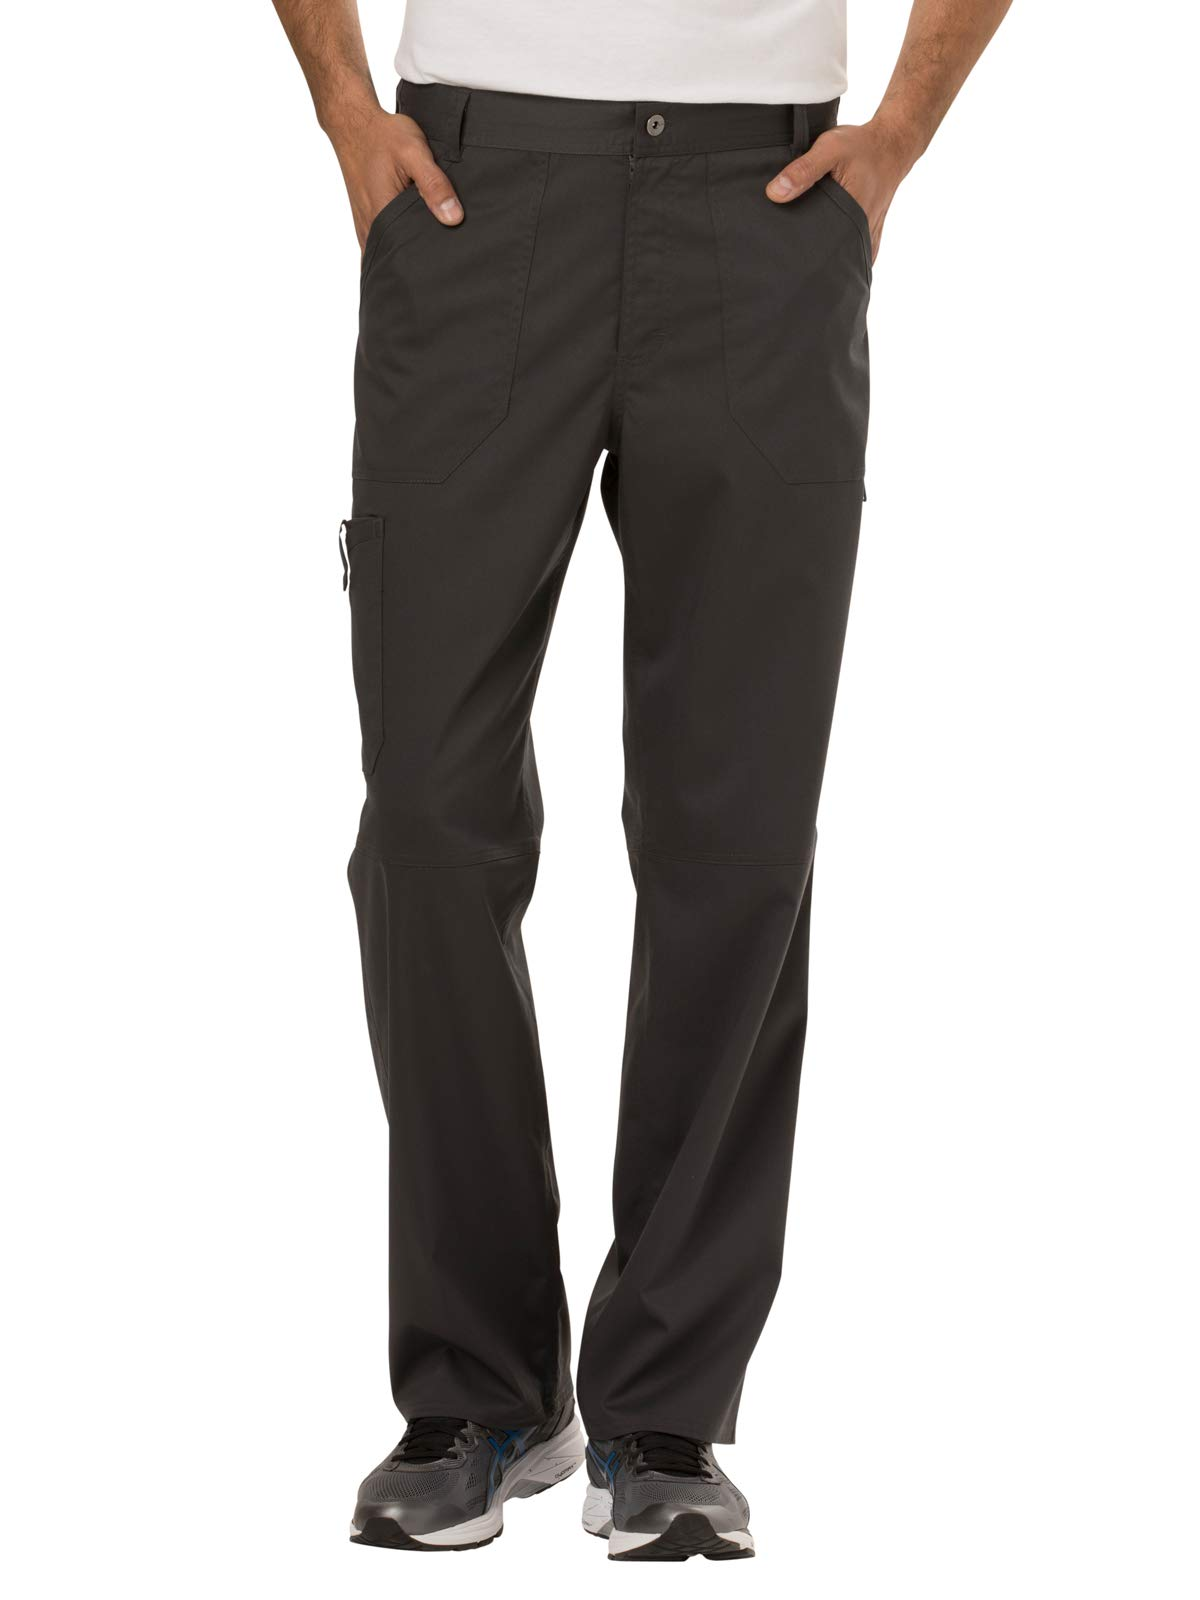 CHEROKEE Men's Fly Front Pant Tall